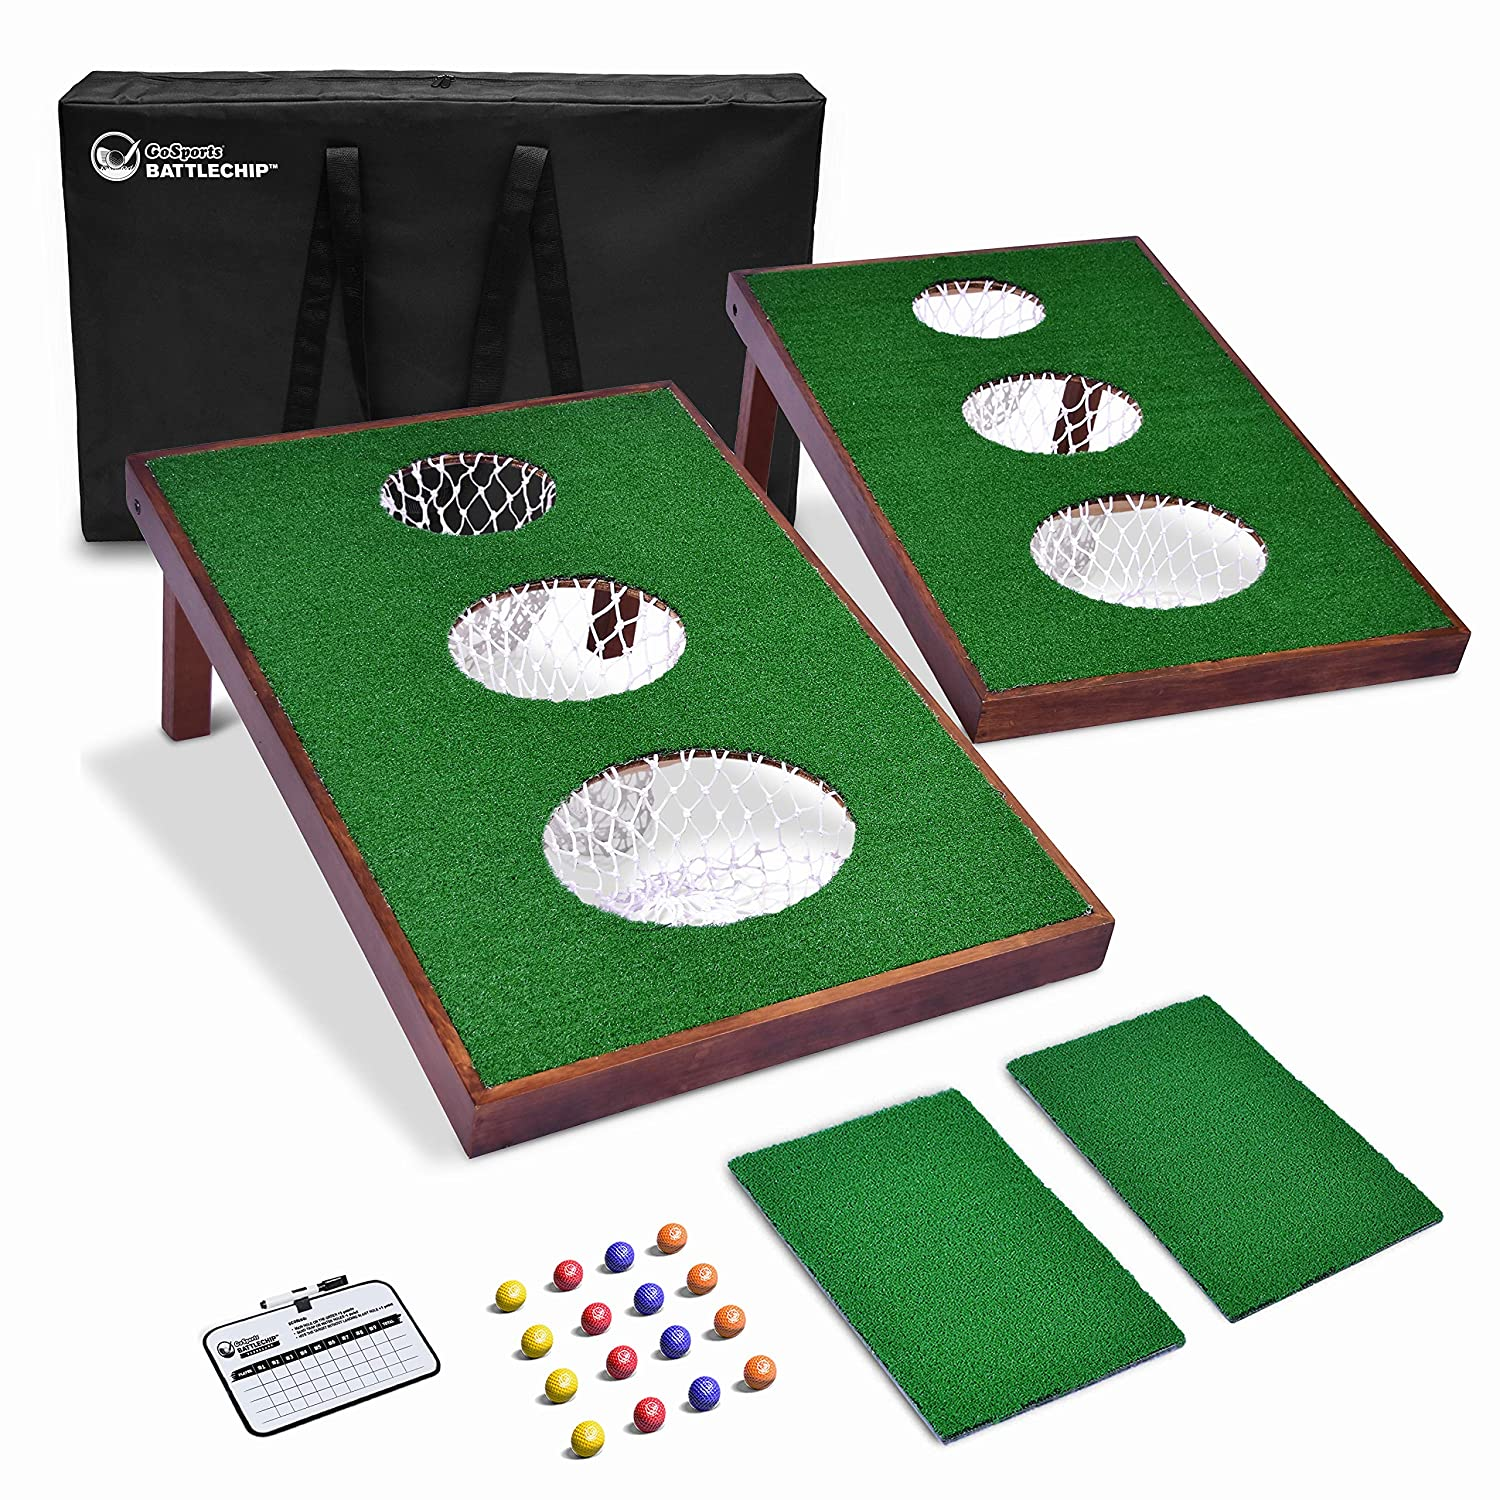 GoSports BattleChip Versus Golf Game | Includes Two 3